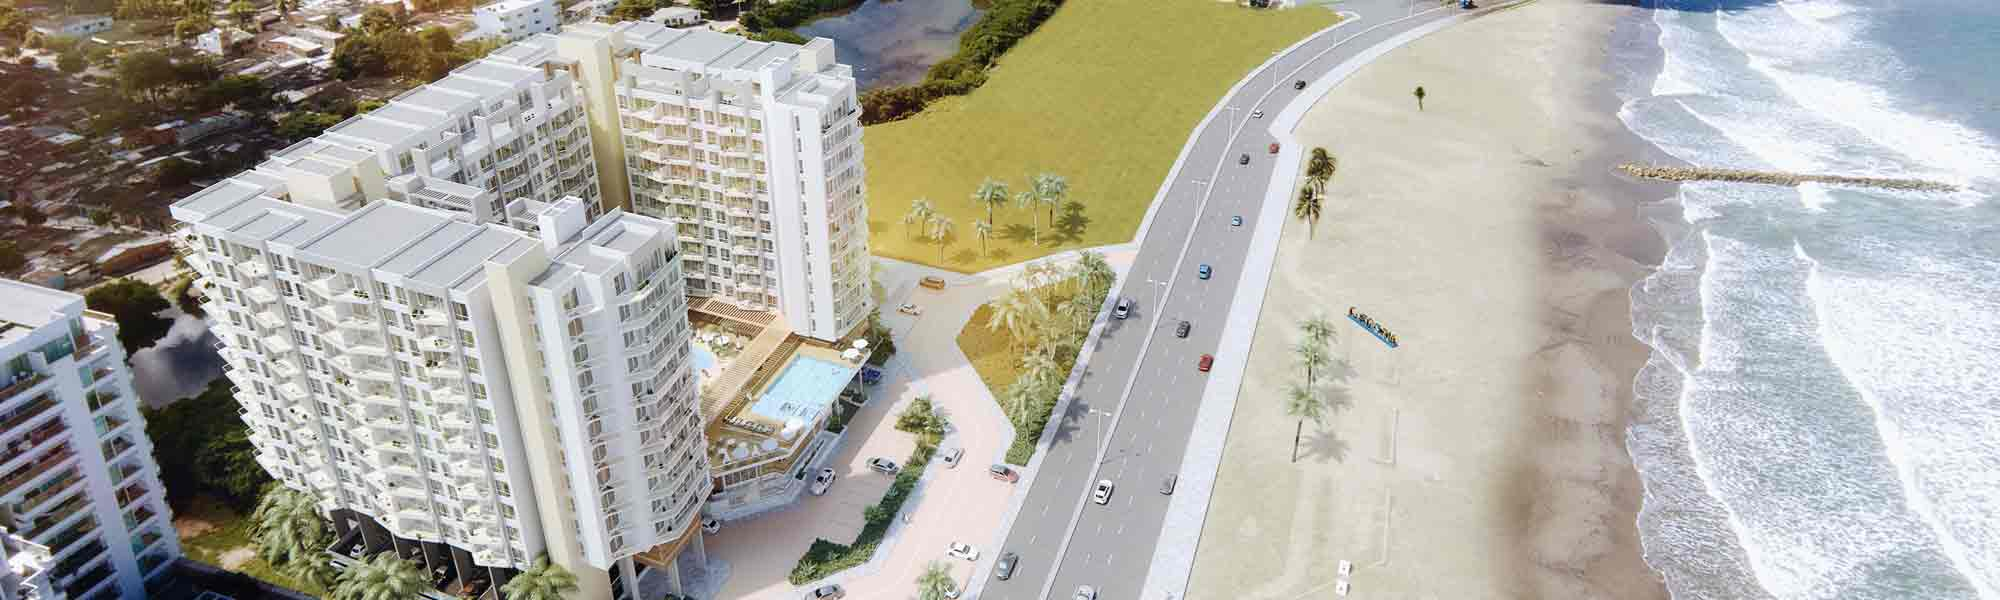 Vivanti Mar is a residential project located in Cartagena